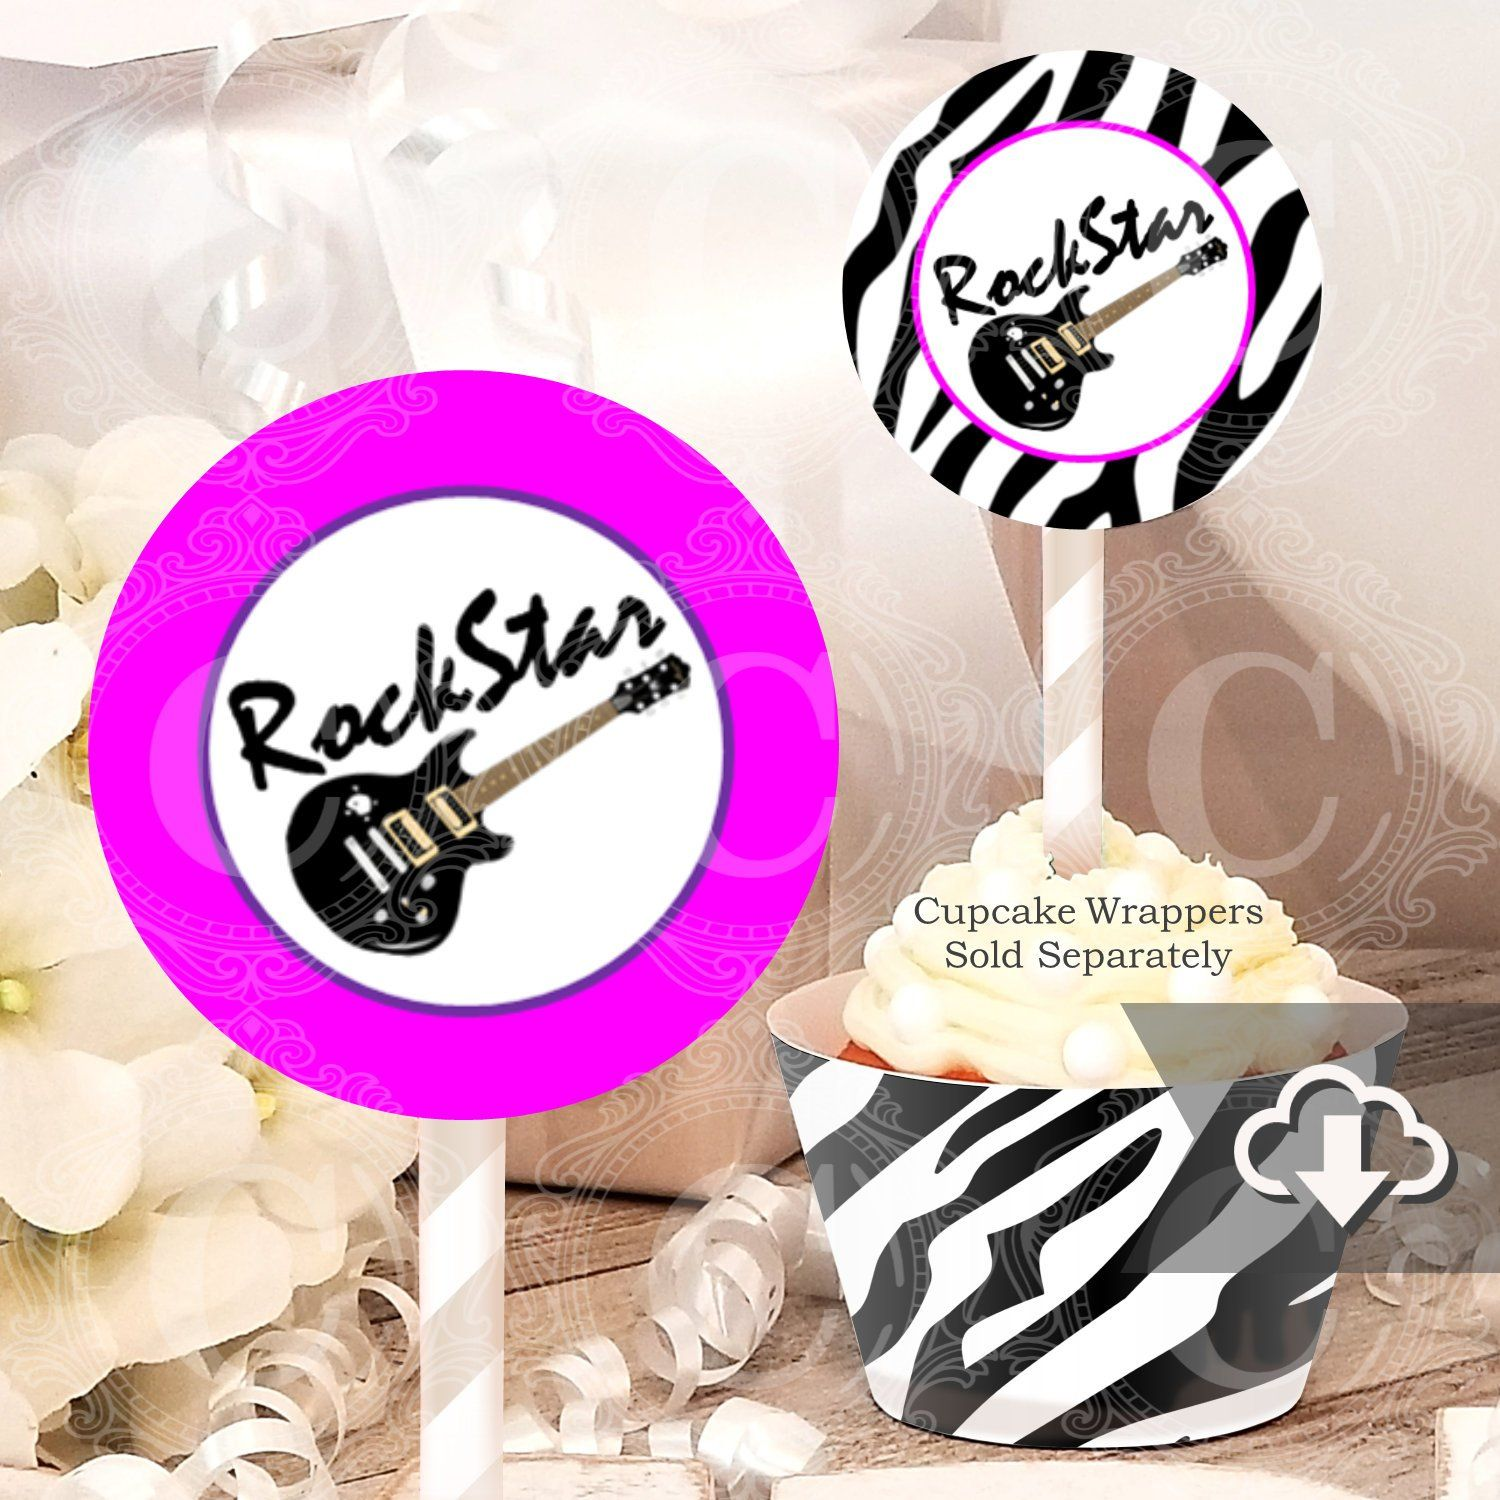 Rock Star Cupcake Toppers Printable, Girls Party Decor, Instant Download, Rock Star Printable Party Decor, Rock Star Party Decorations #rockstarparty